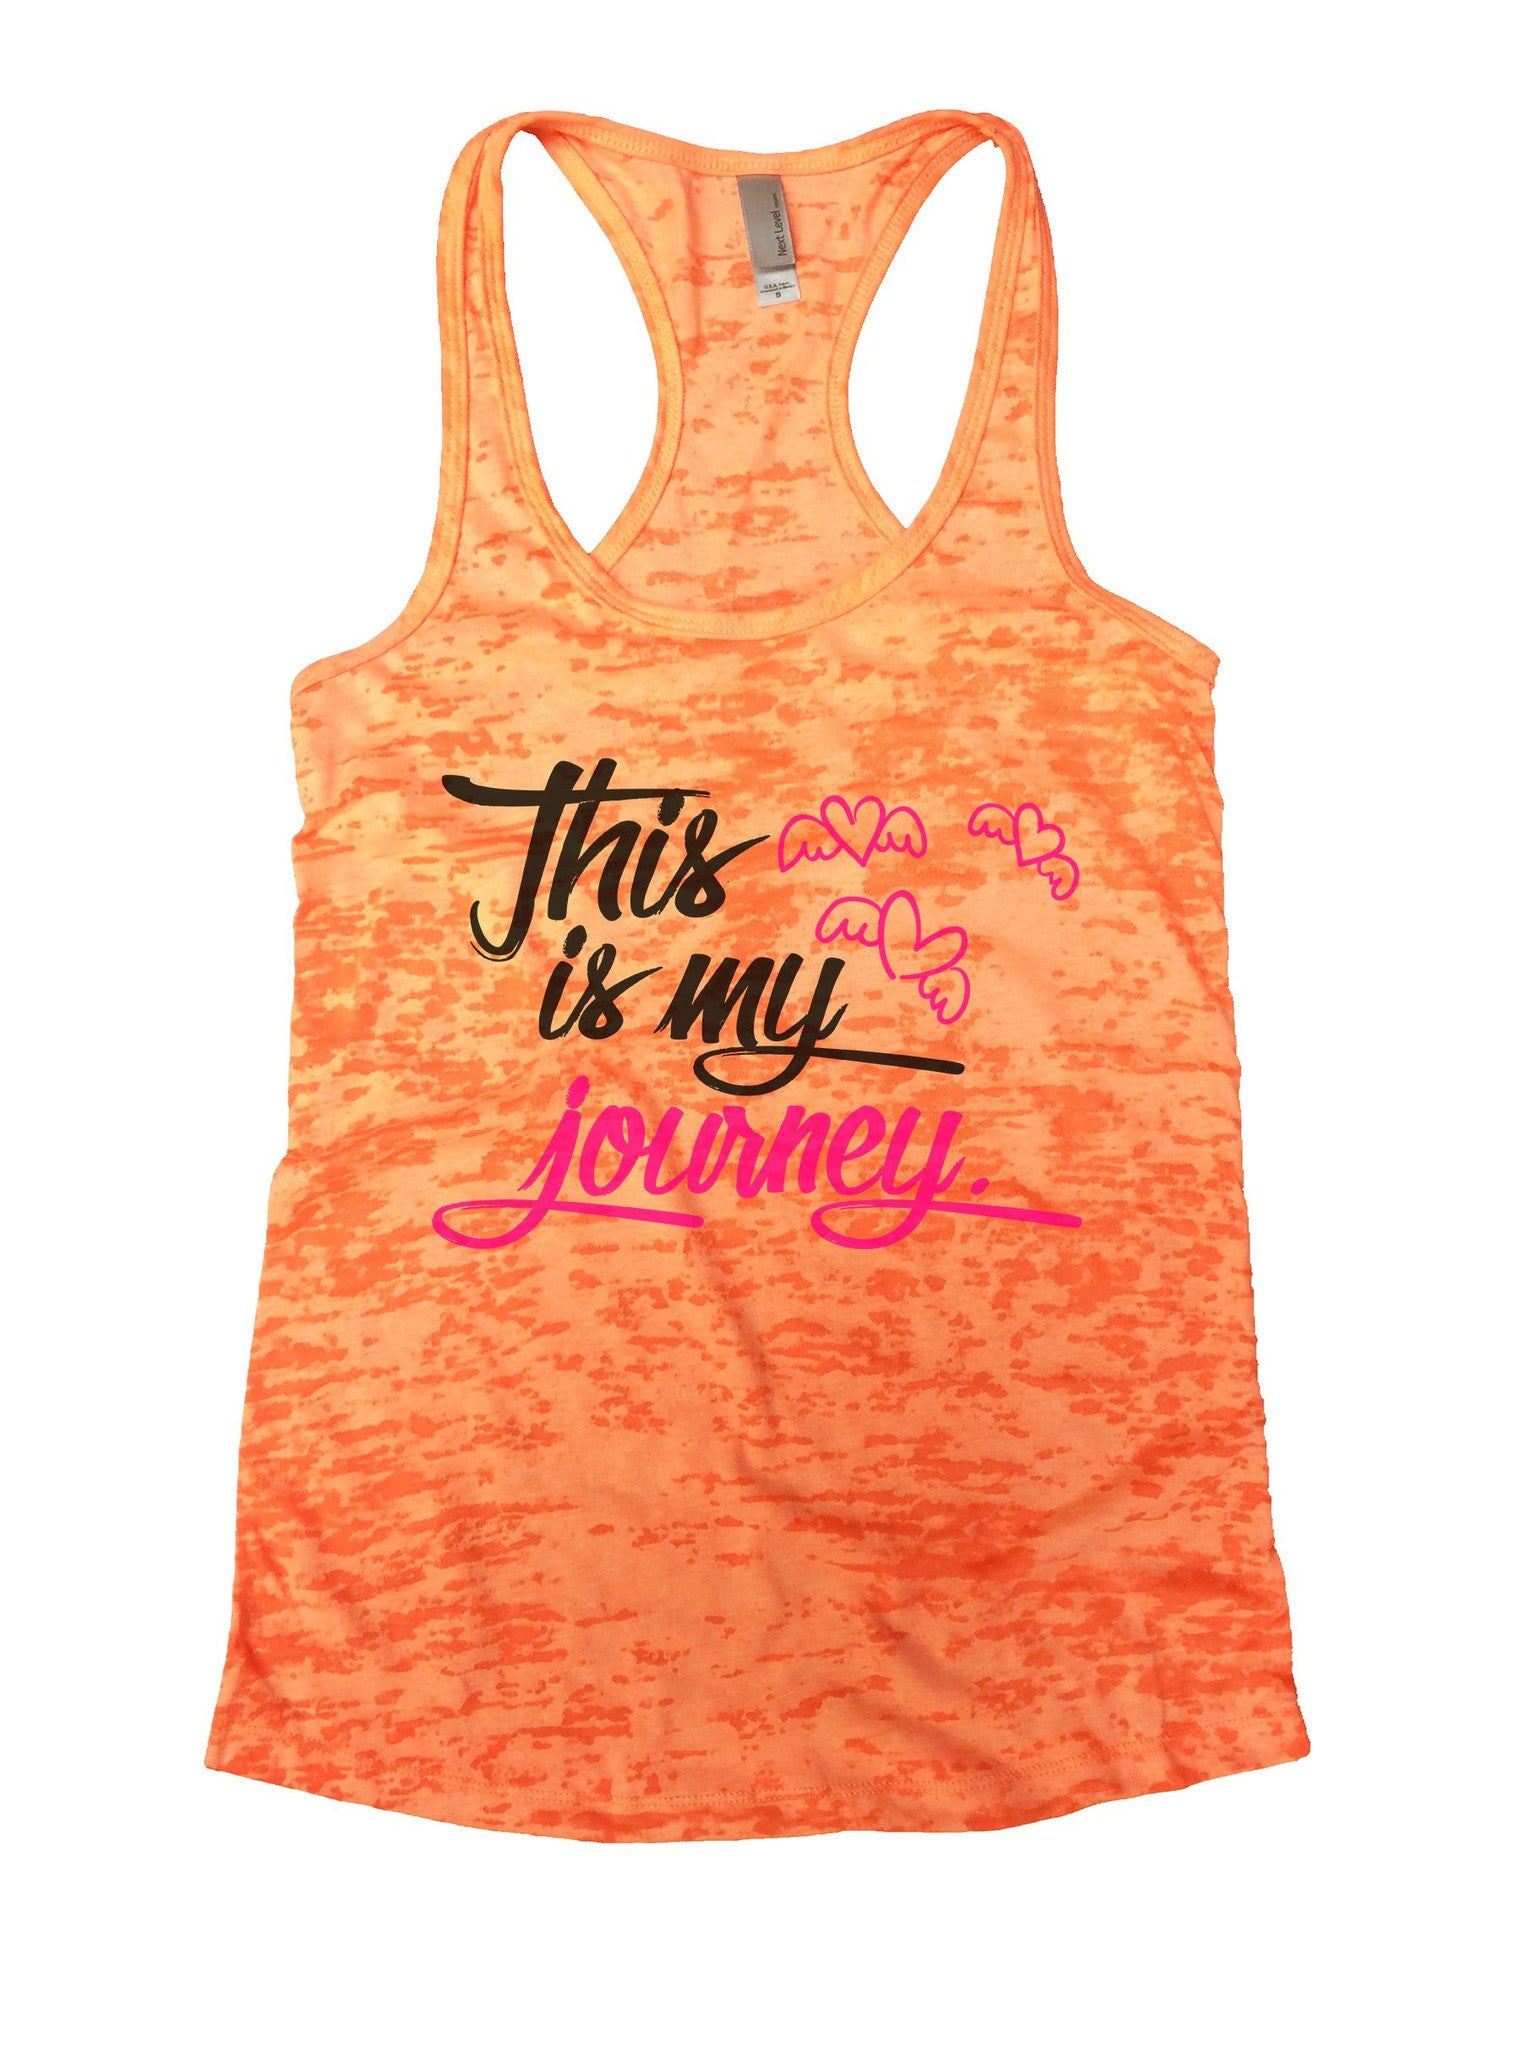 This Is My Journey Burnout Tank Top By BurnoutTankTops.com - 1042 - Funny Shirts Tank Tops Burnouts and Triblends  - 3